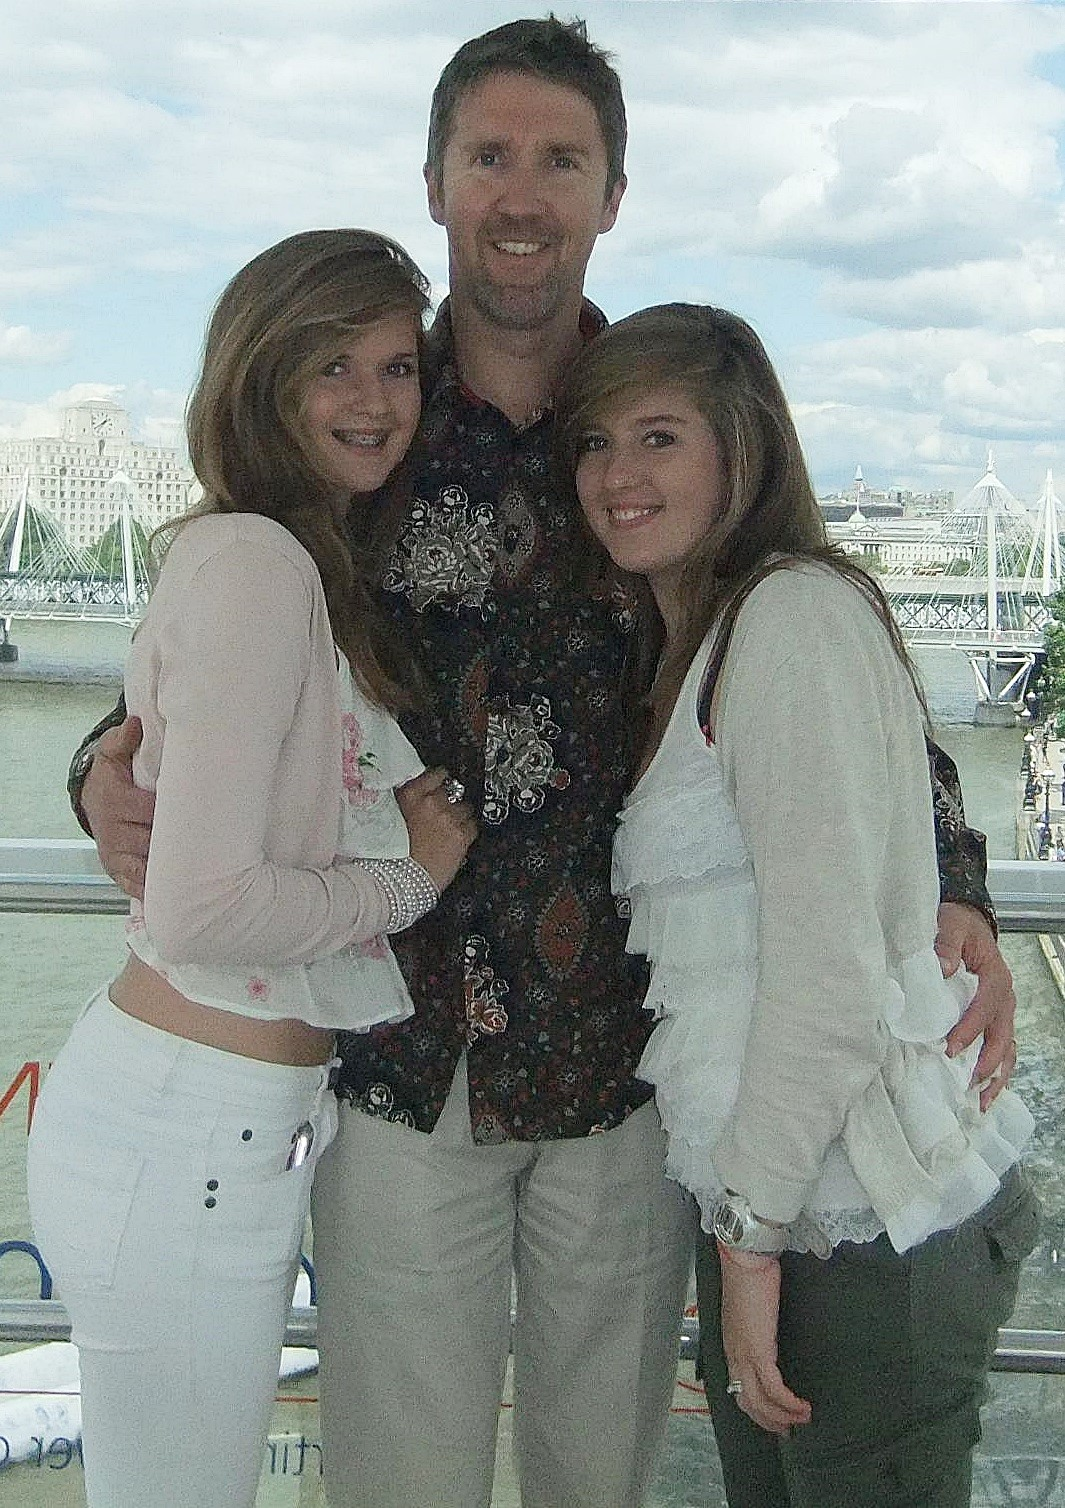 chrissi-with-her-dad-mike-and-her-sister-ciana-in-2011